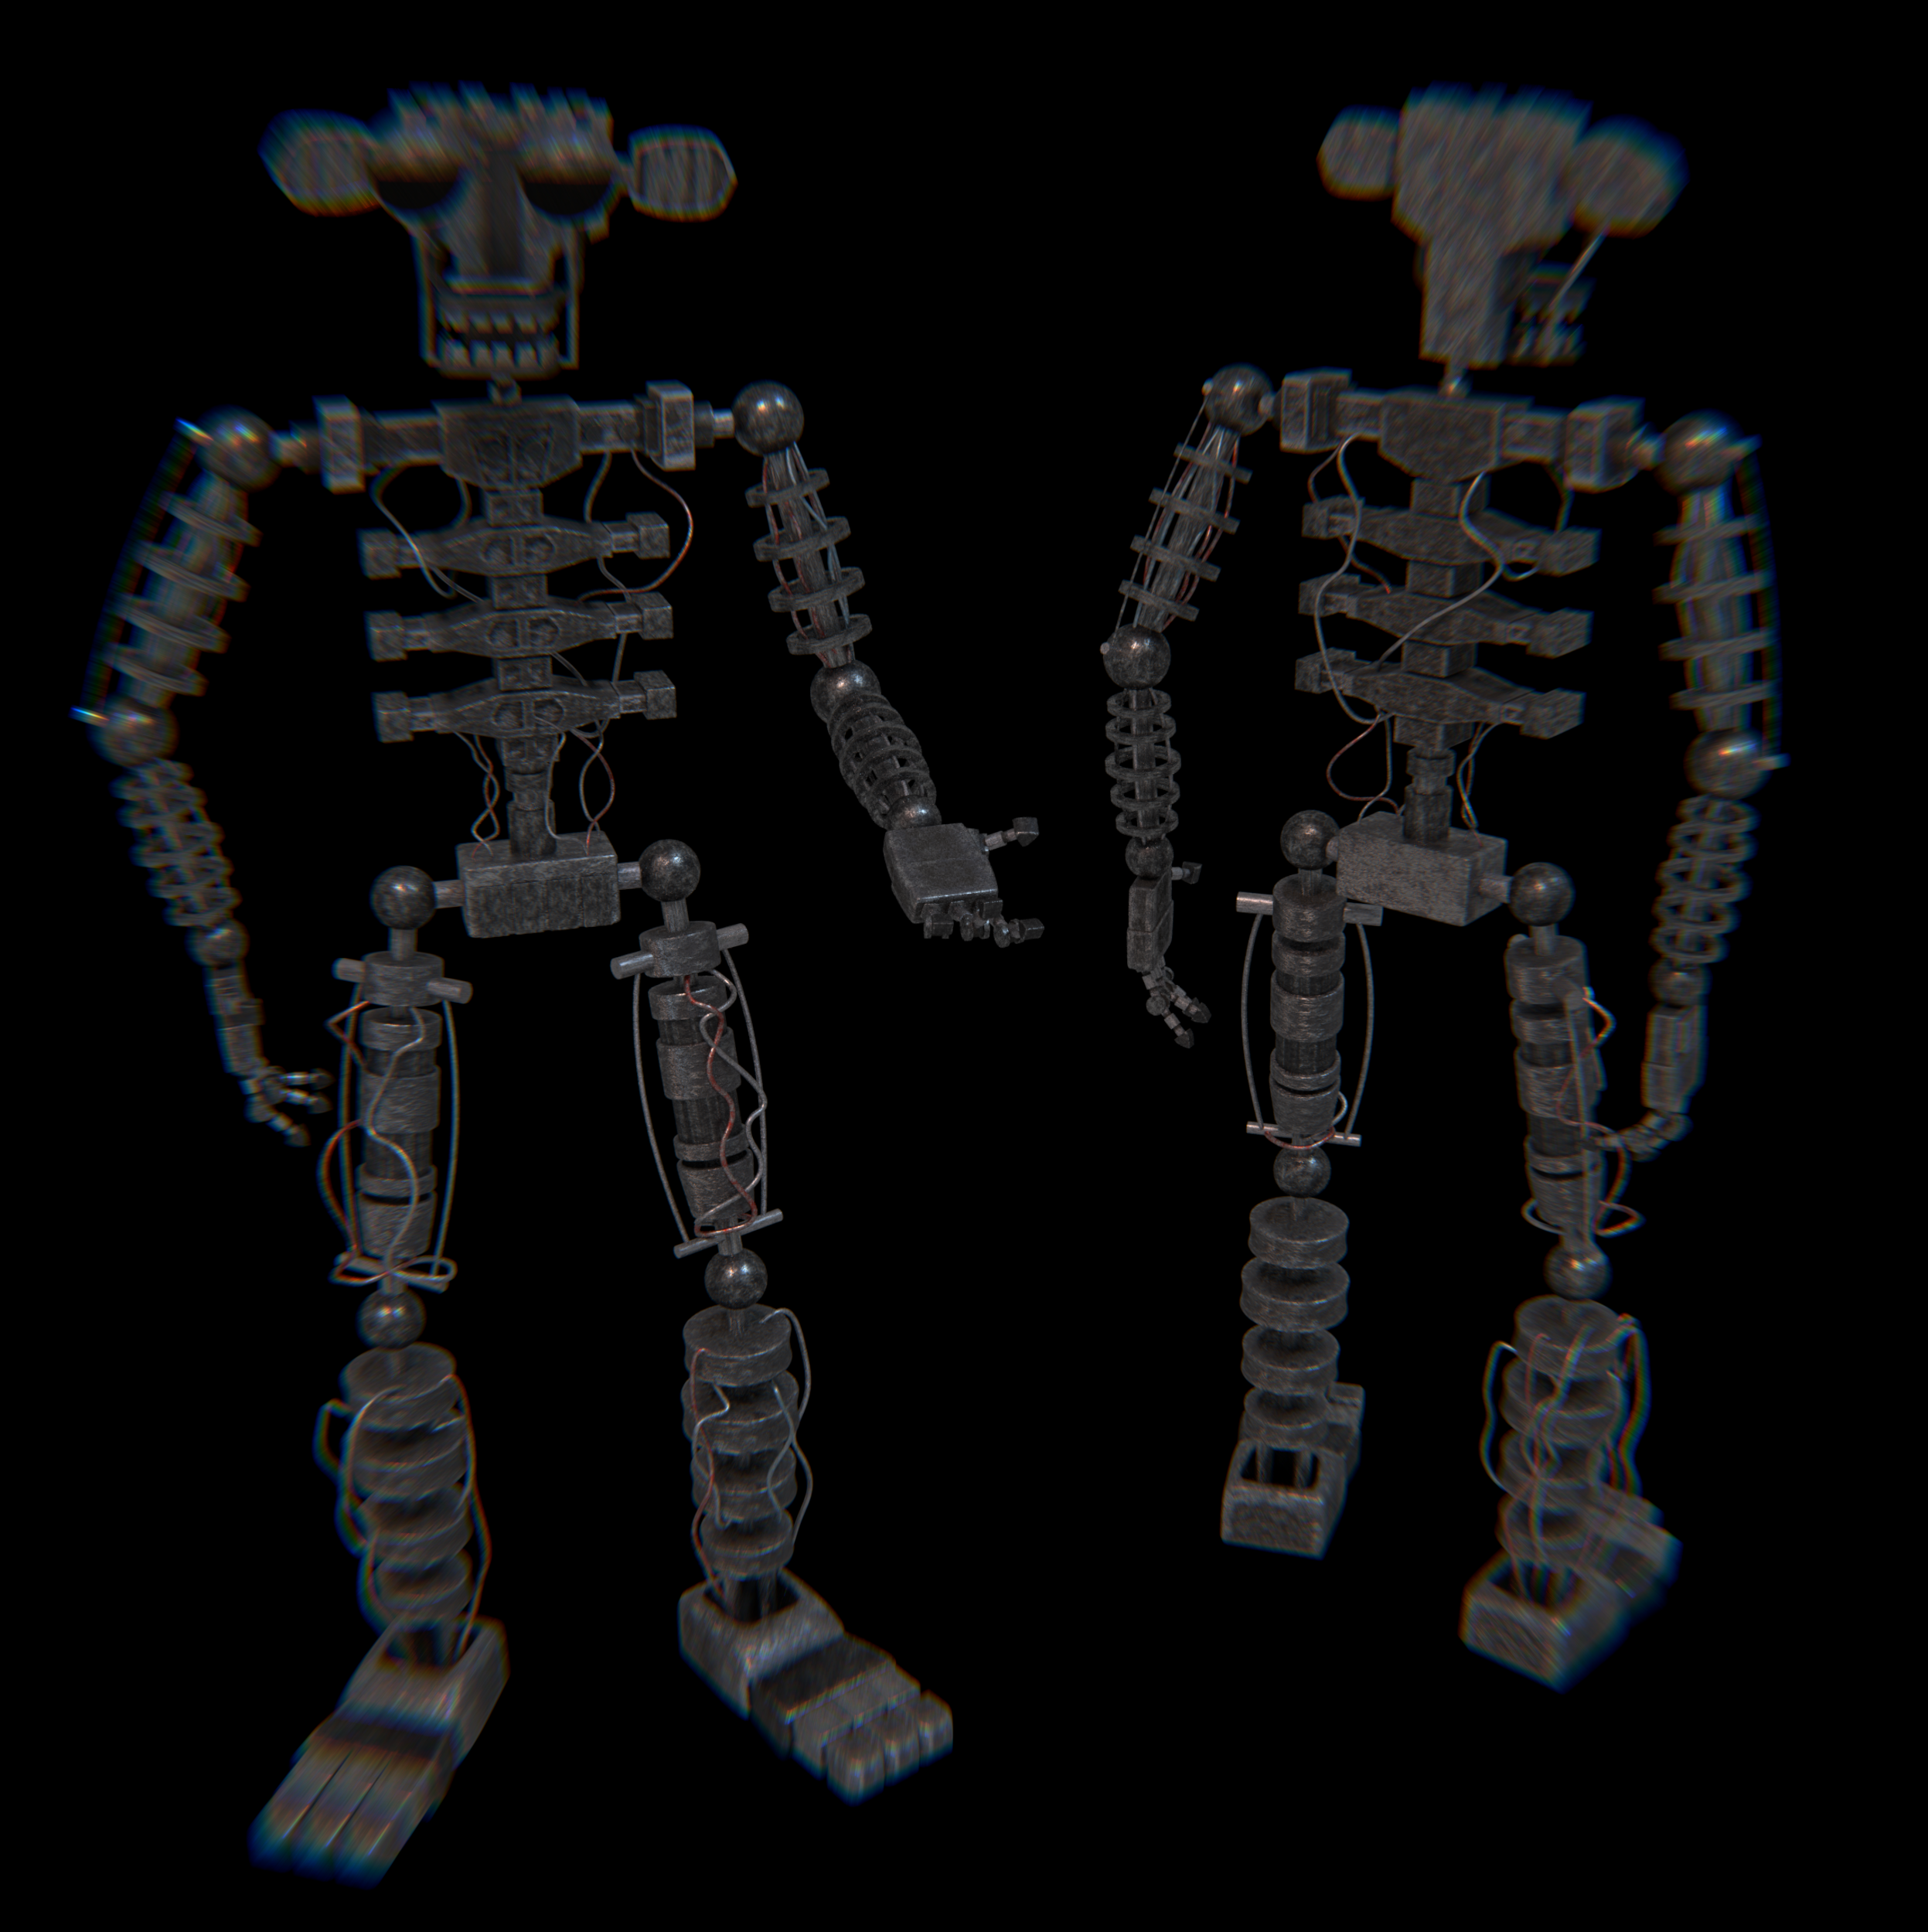 fnaf 2 endoskeleton rusty and old styled by